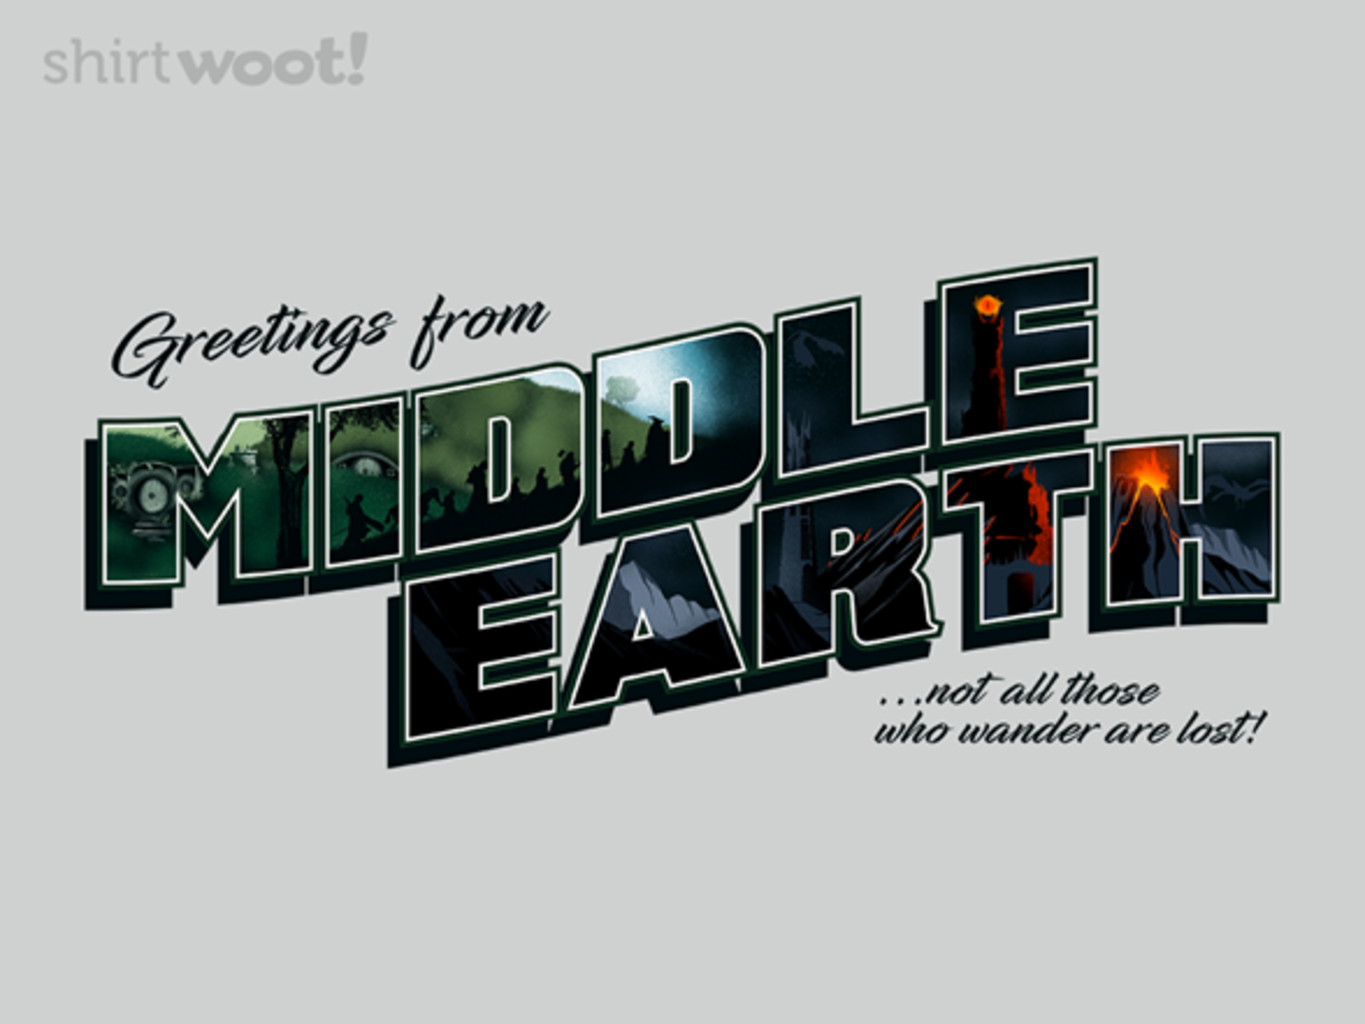 Woot!: Greetings from Middle Earth - $8.00 + $5 standard shipping